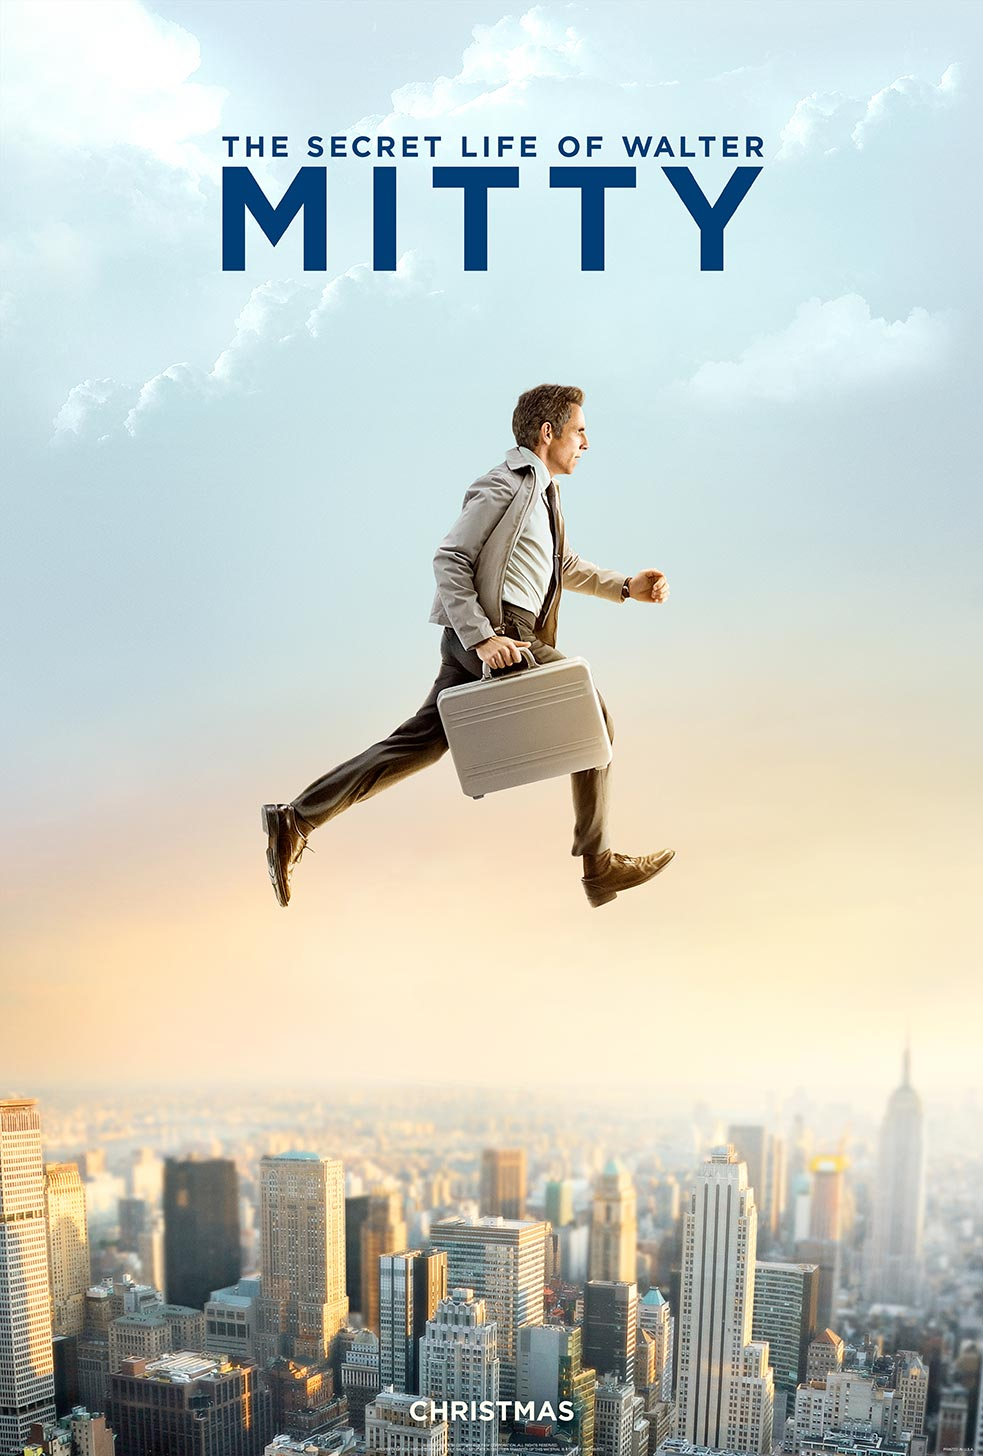 The Secret Life of Walter Mitty film poster